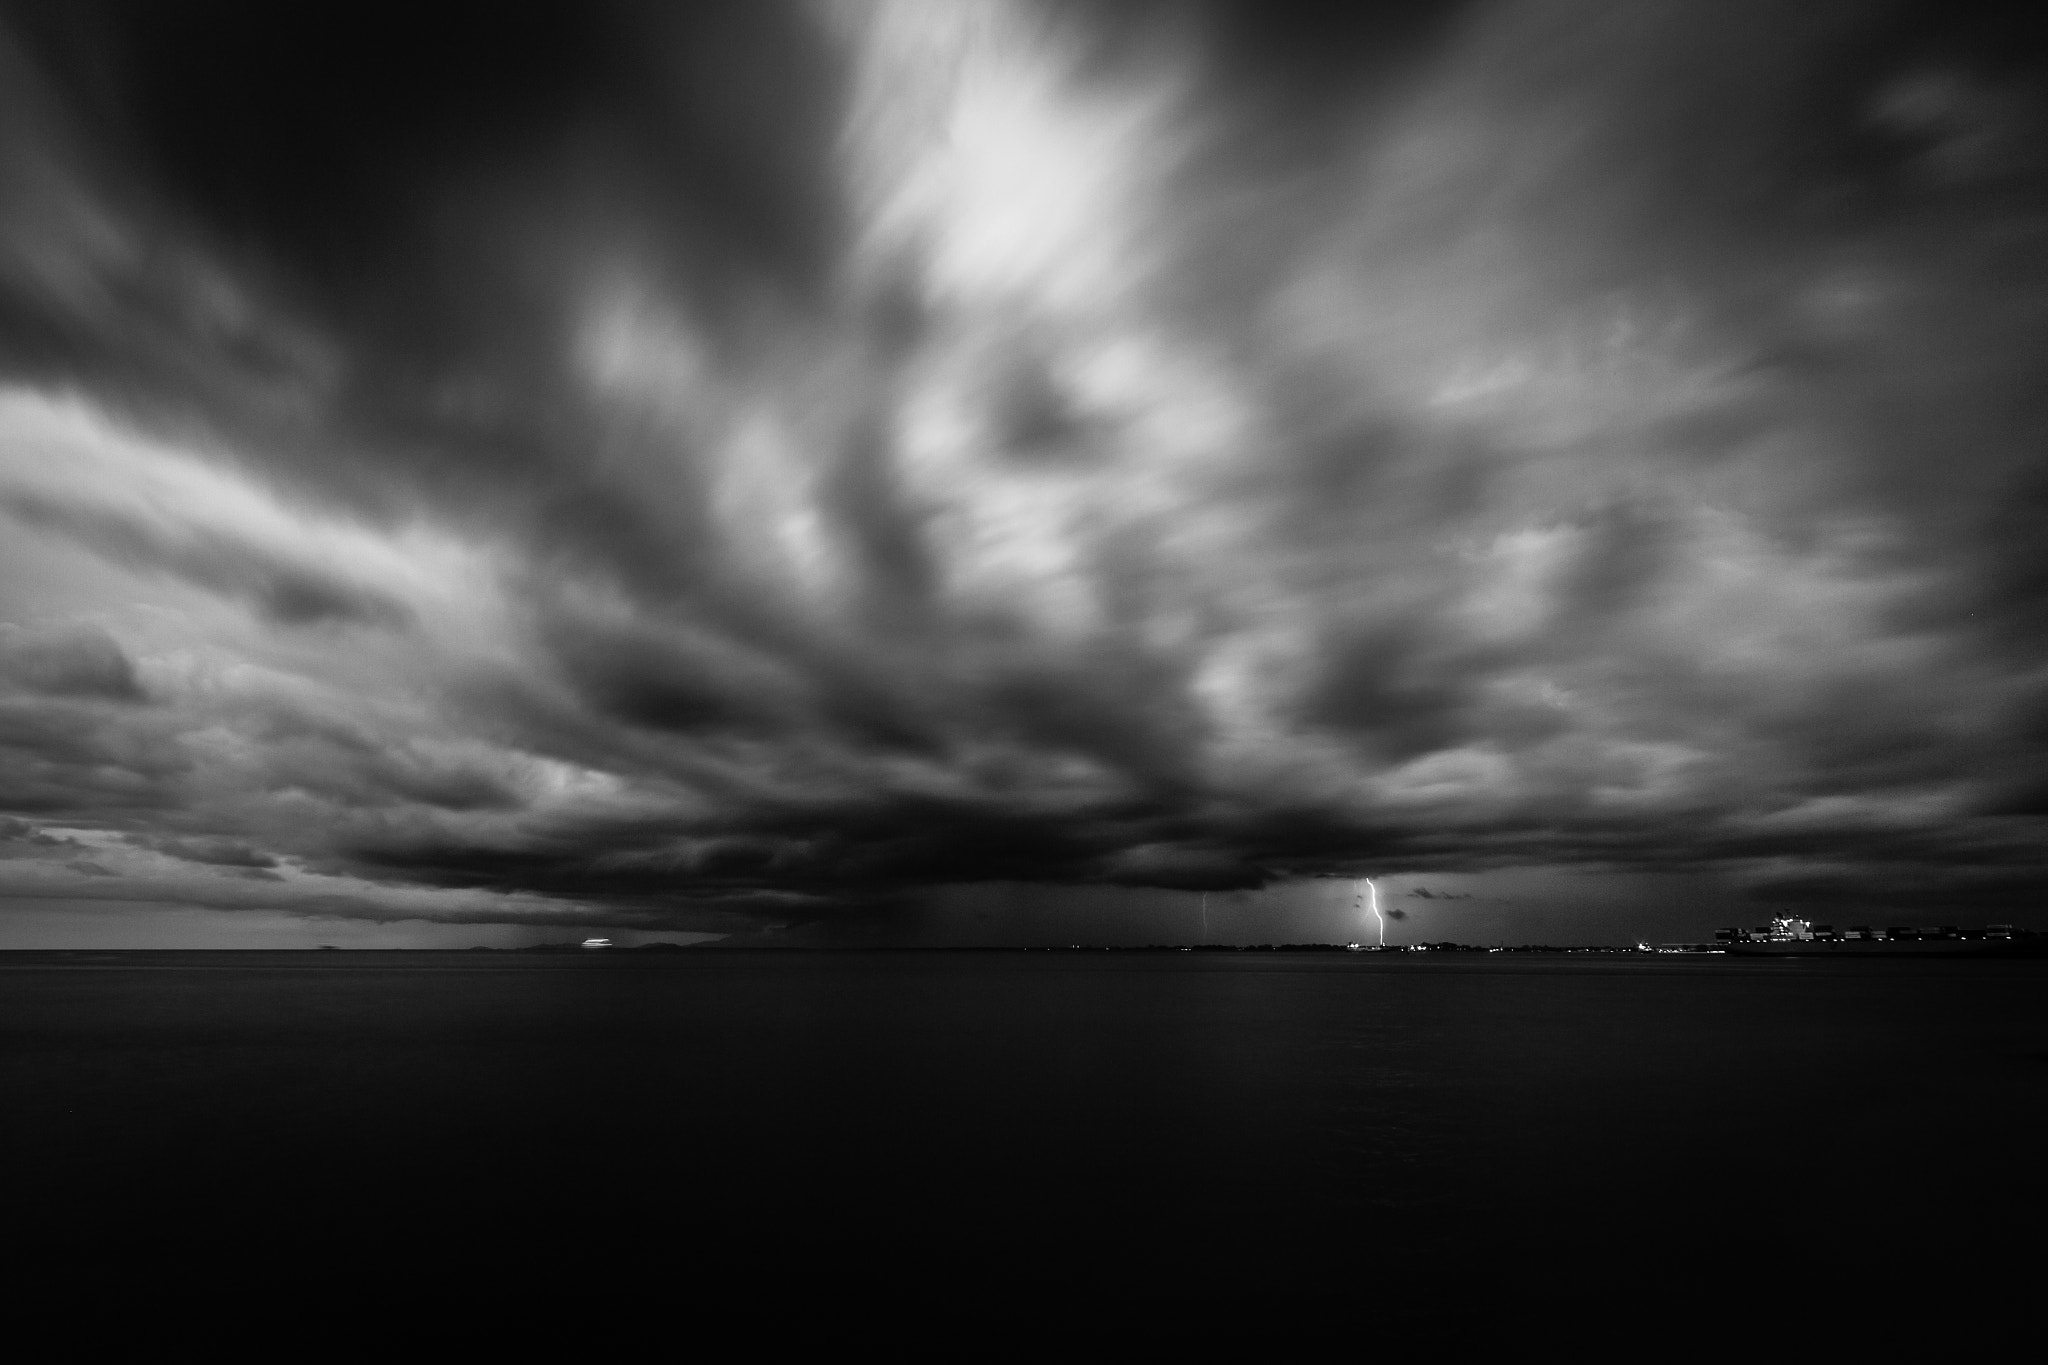 Photograph Storm  by Pierrick Blons on 500px